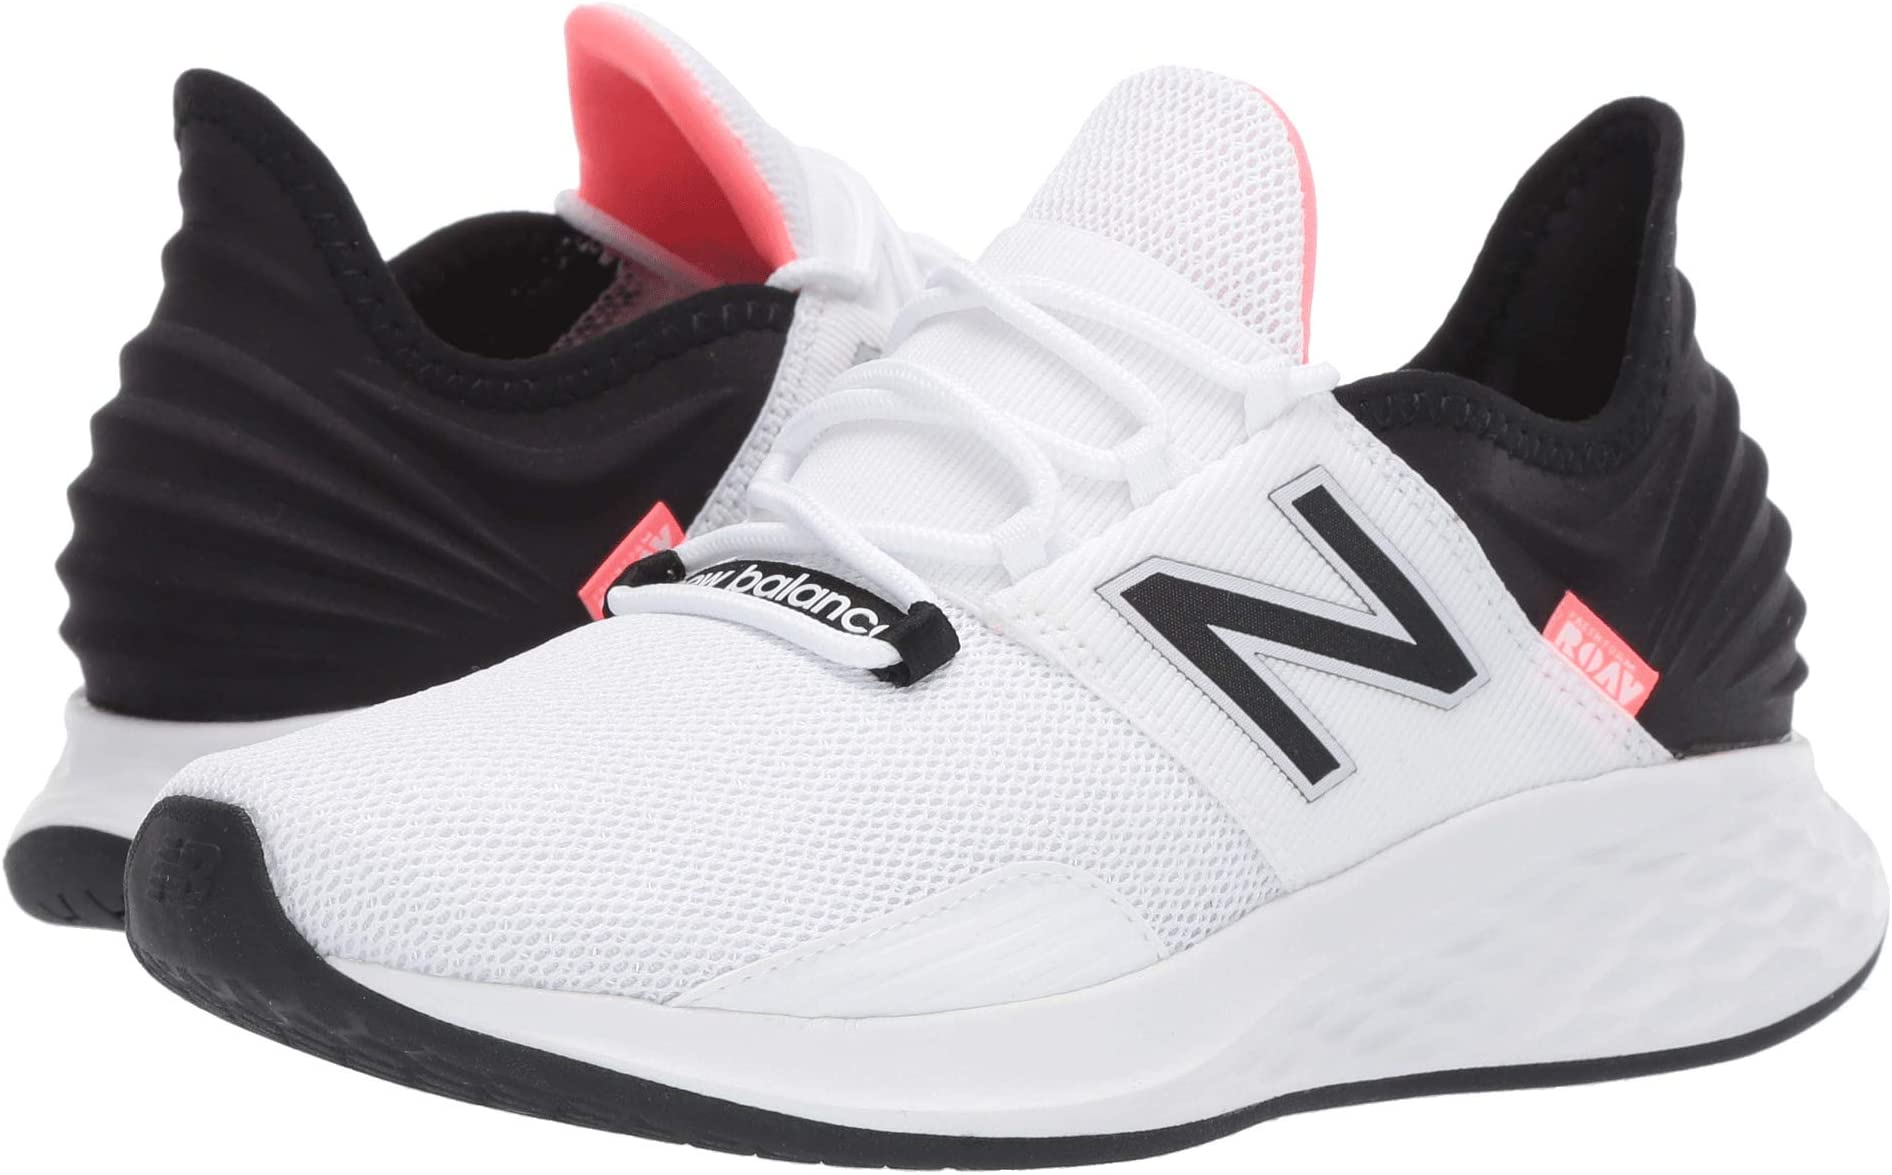 6a088bd7df934 New Balance Shoes, Clothing, Activewear, Socks | Zappos.com